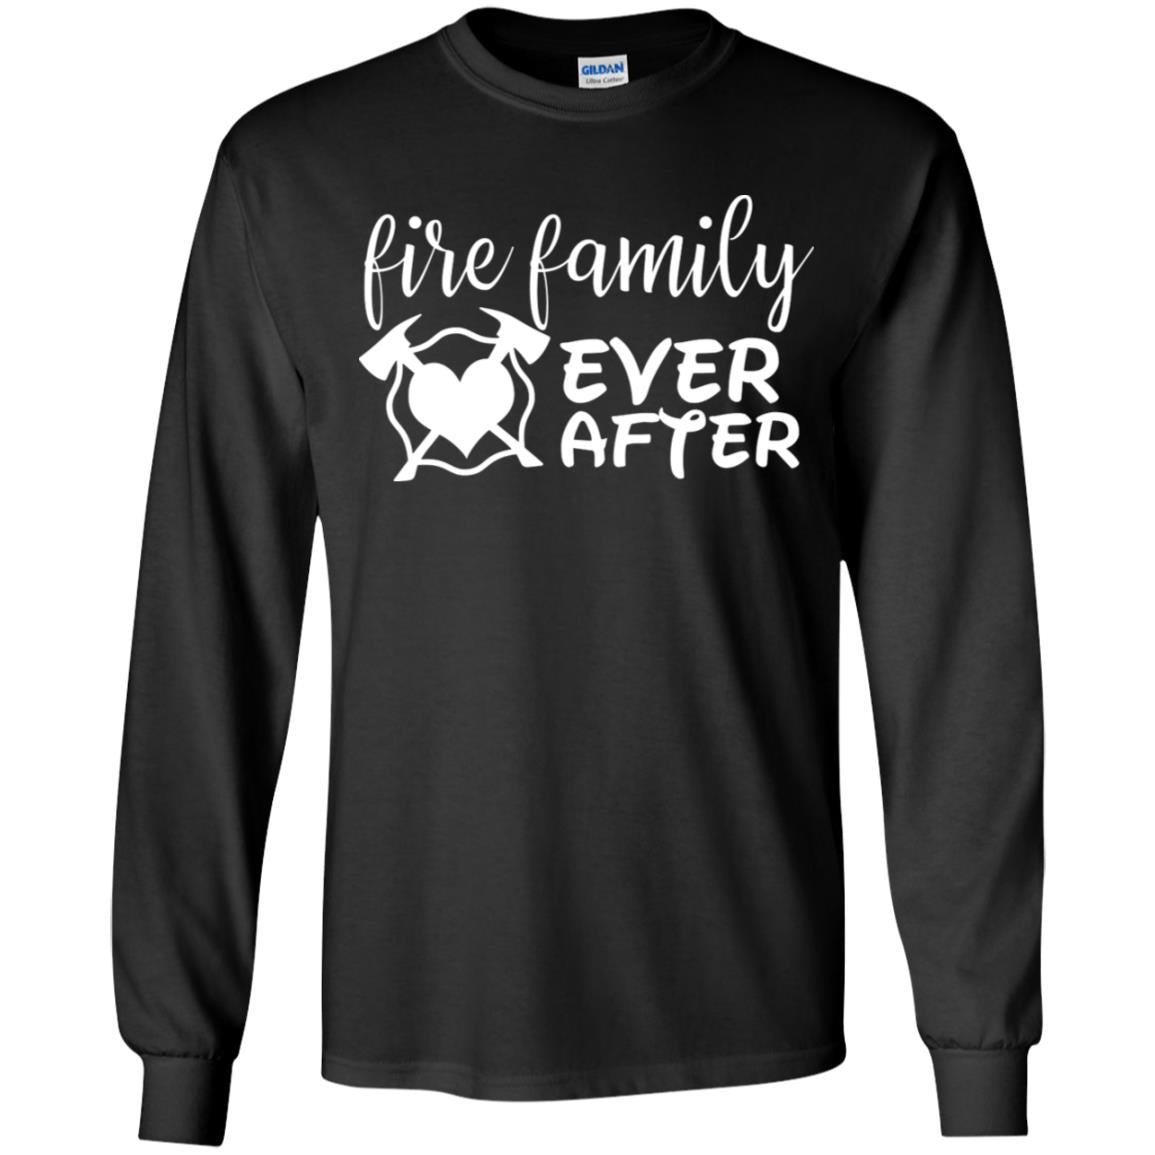 Fire Family Ever After Youth LS T-Shirt by Gildan